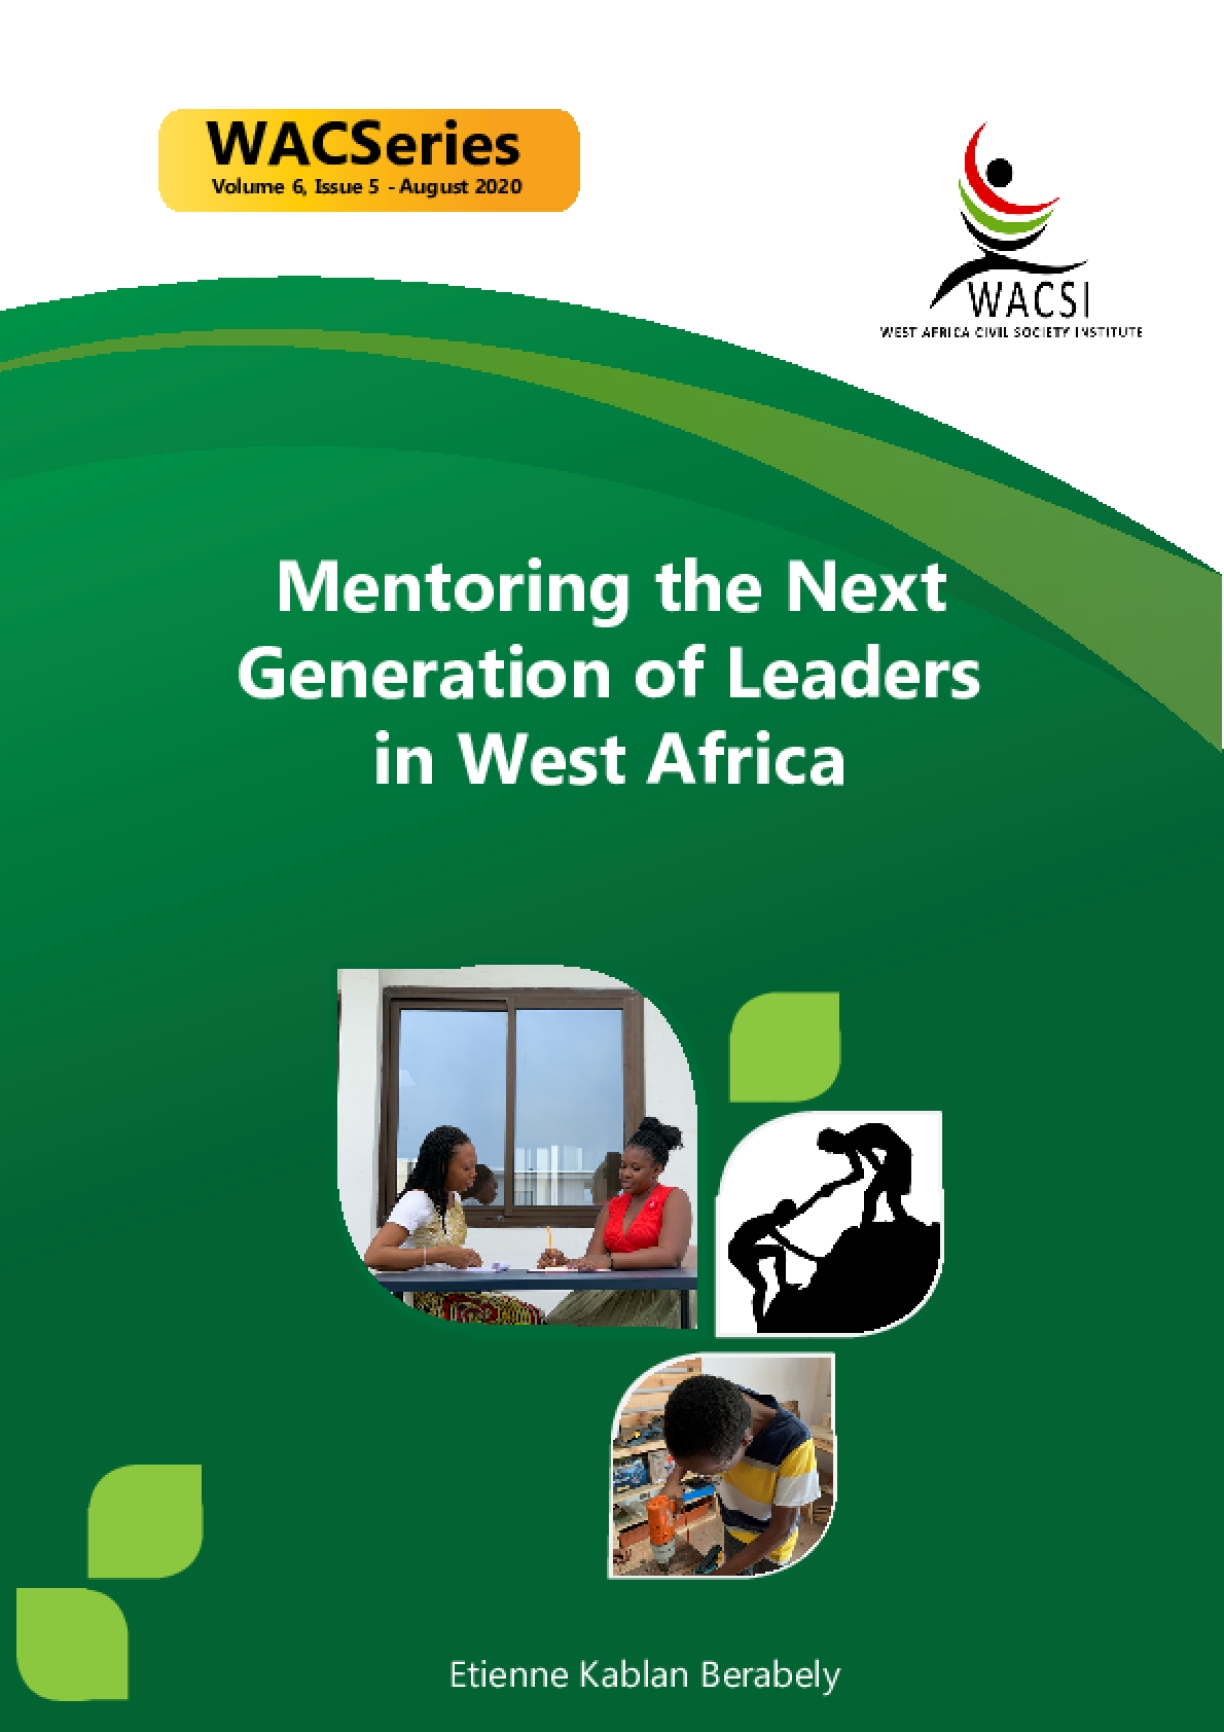 Mentoring the Next Generation of Leaders in West Africa